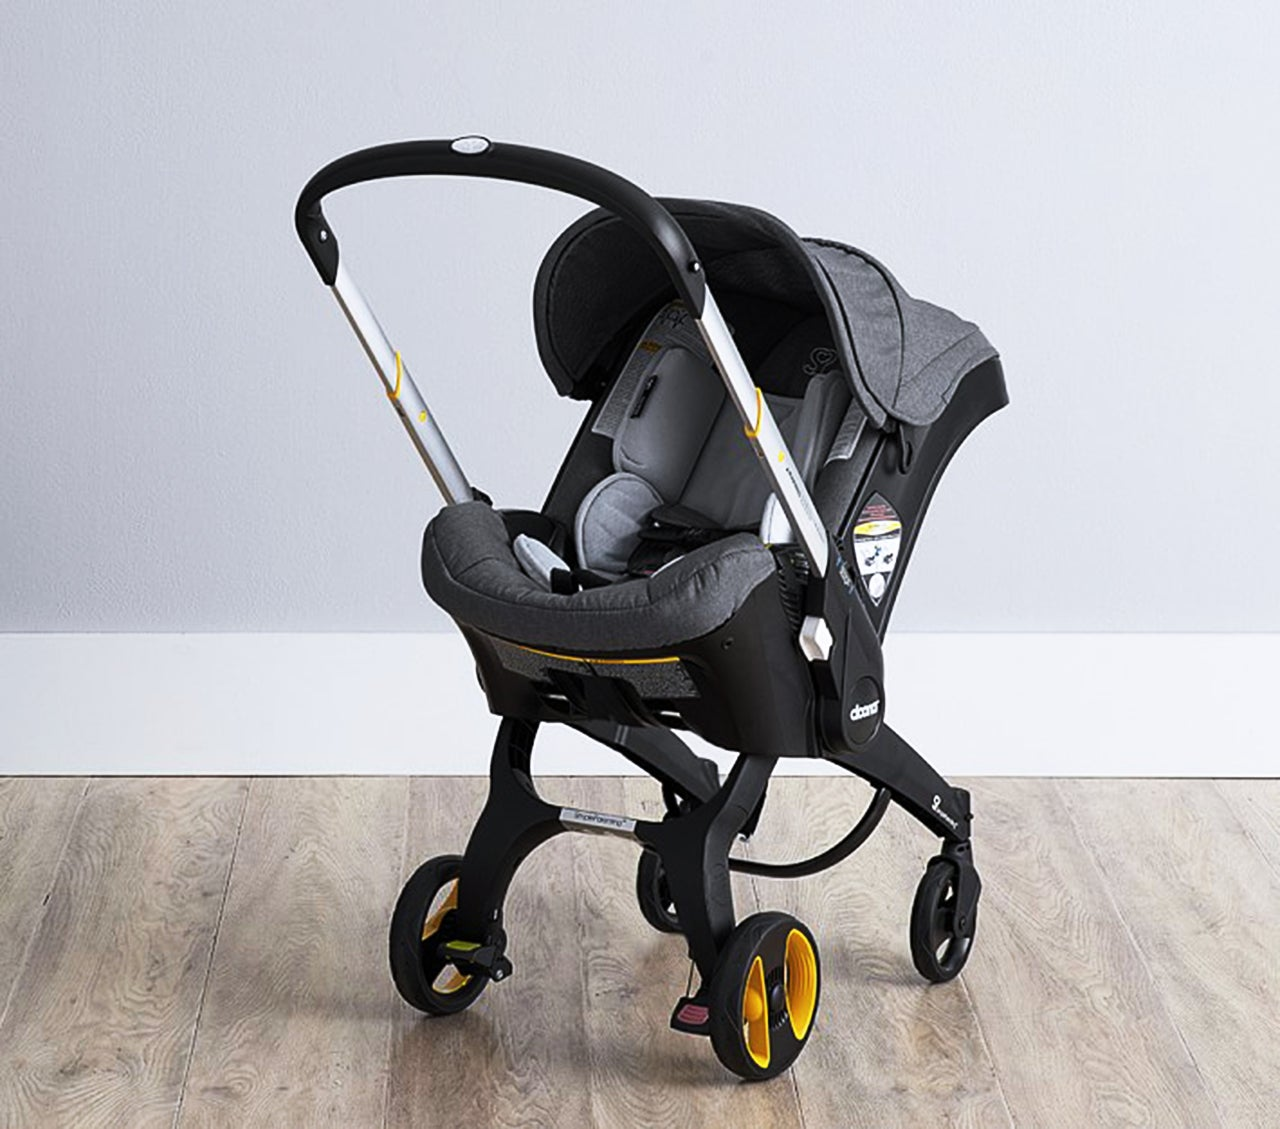 Meet The Car Seat That Converts Into A Stroller In Seconds The Doona